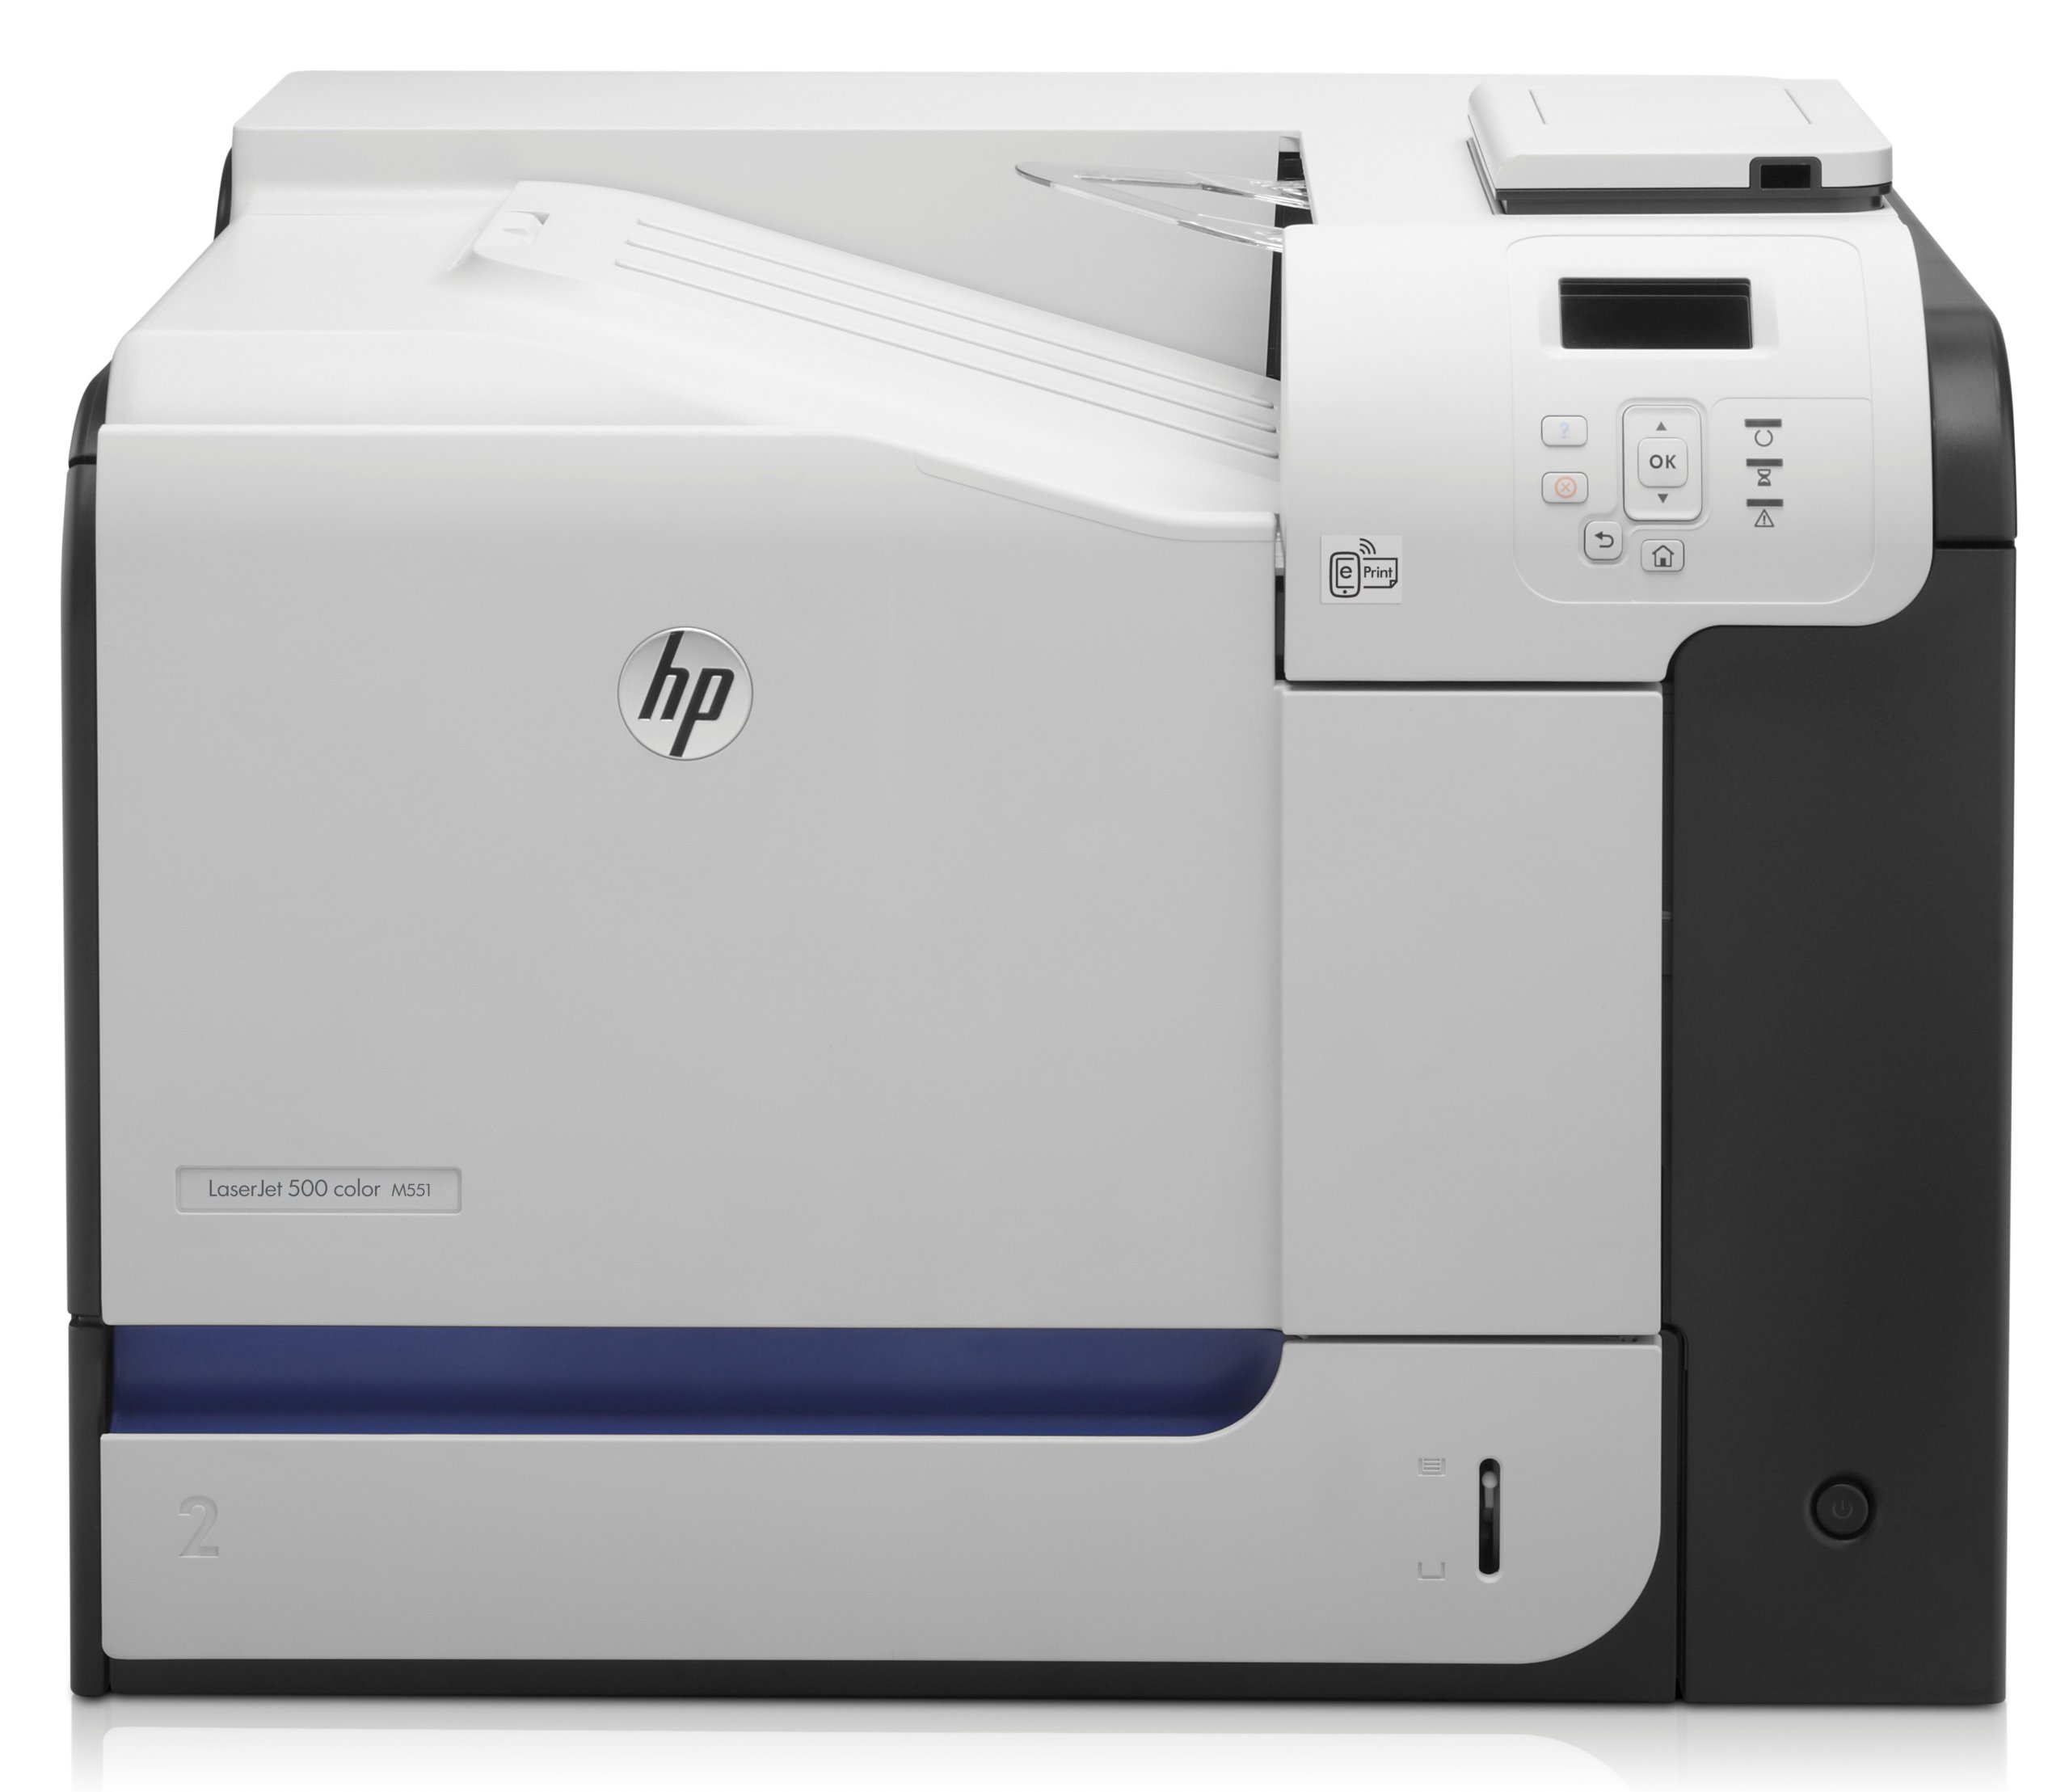 HP Laserjet Enterprise 500 Color M551dn, (CF082A) by HP